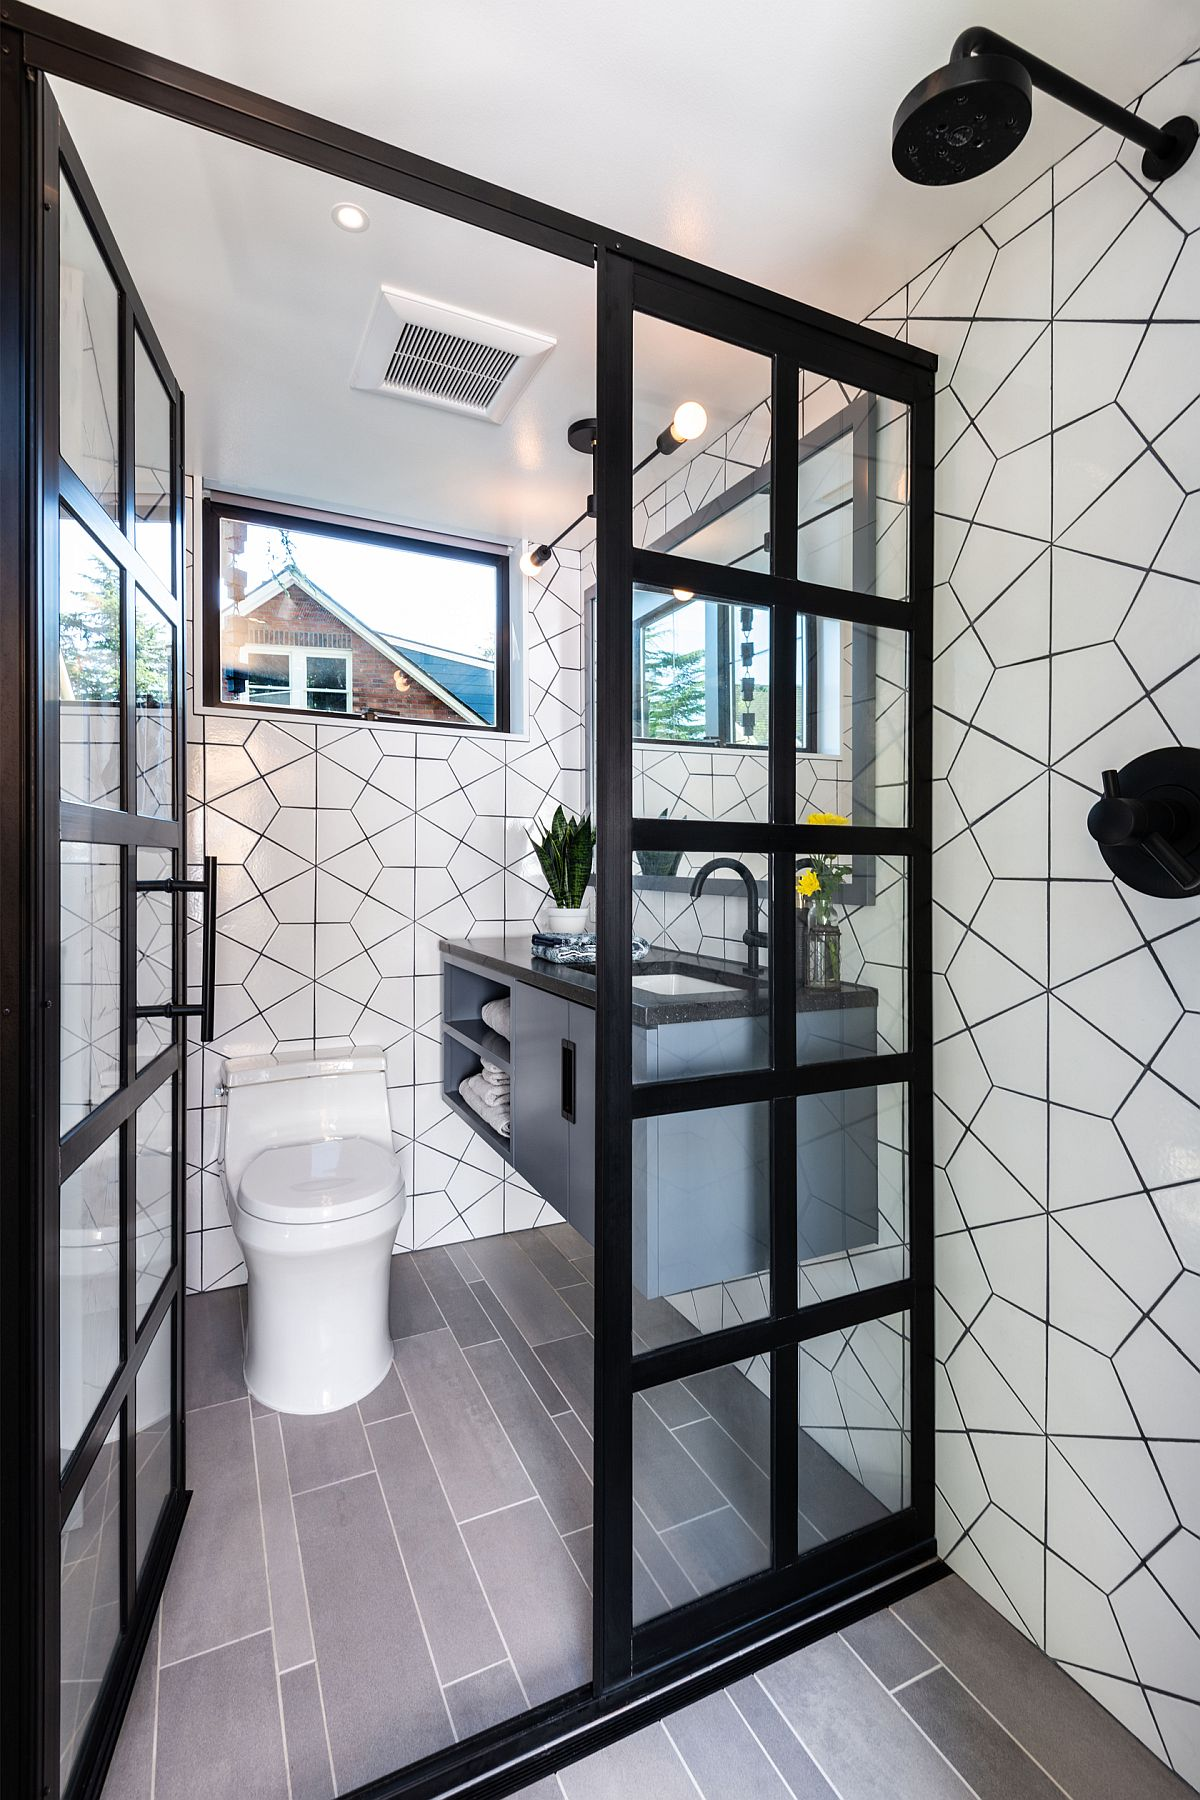 Modern bathroom in blacka nd white with geo pattern